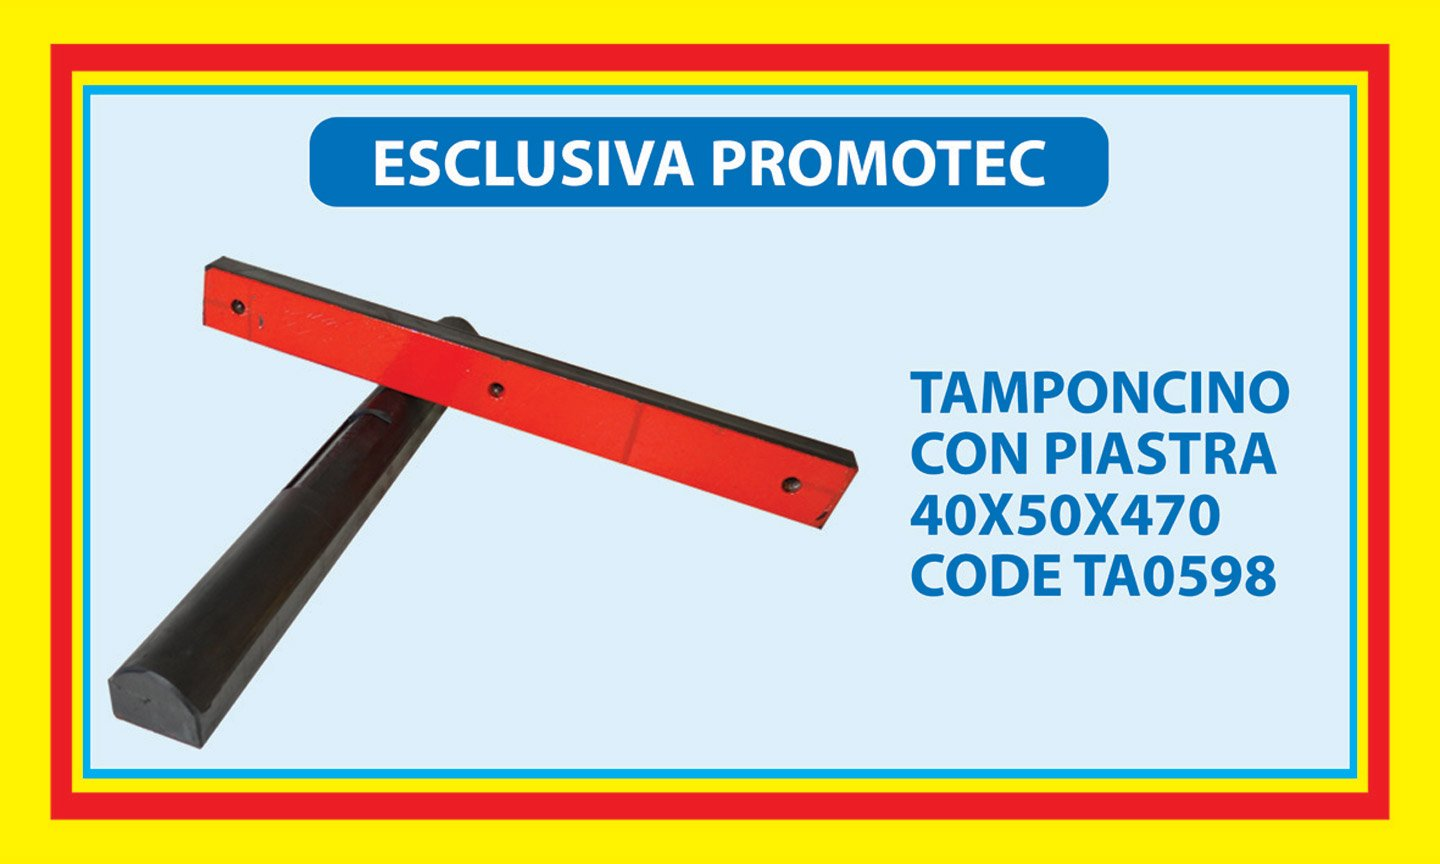 tamponcino con piastra 40X50X470